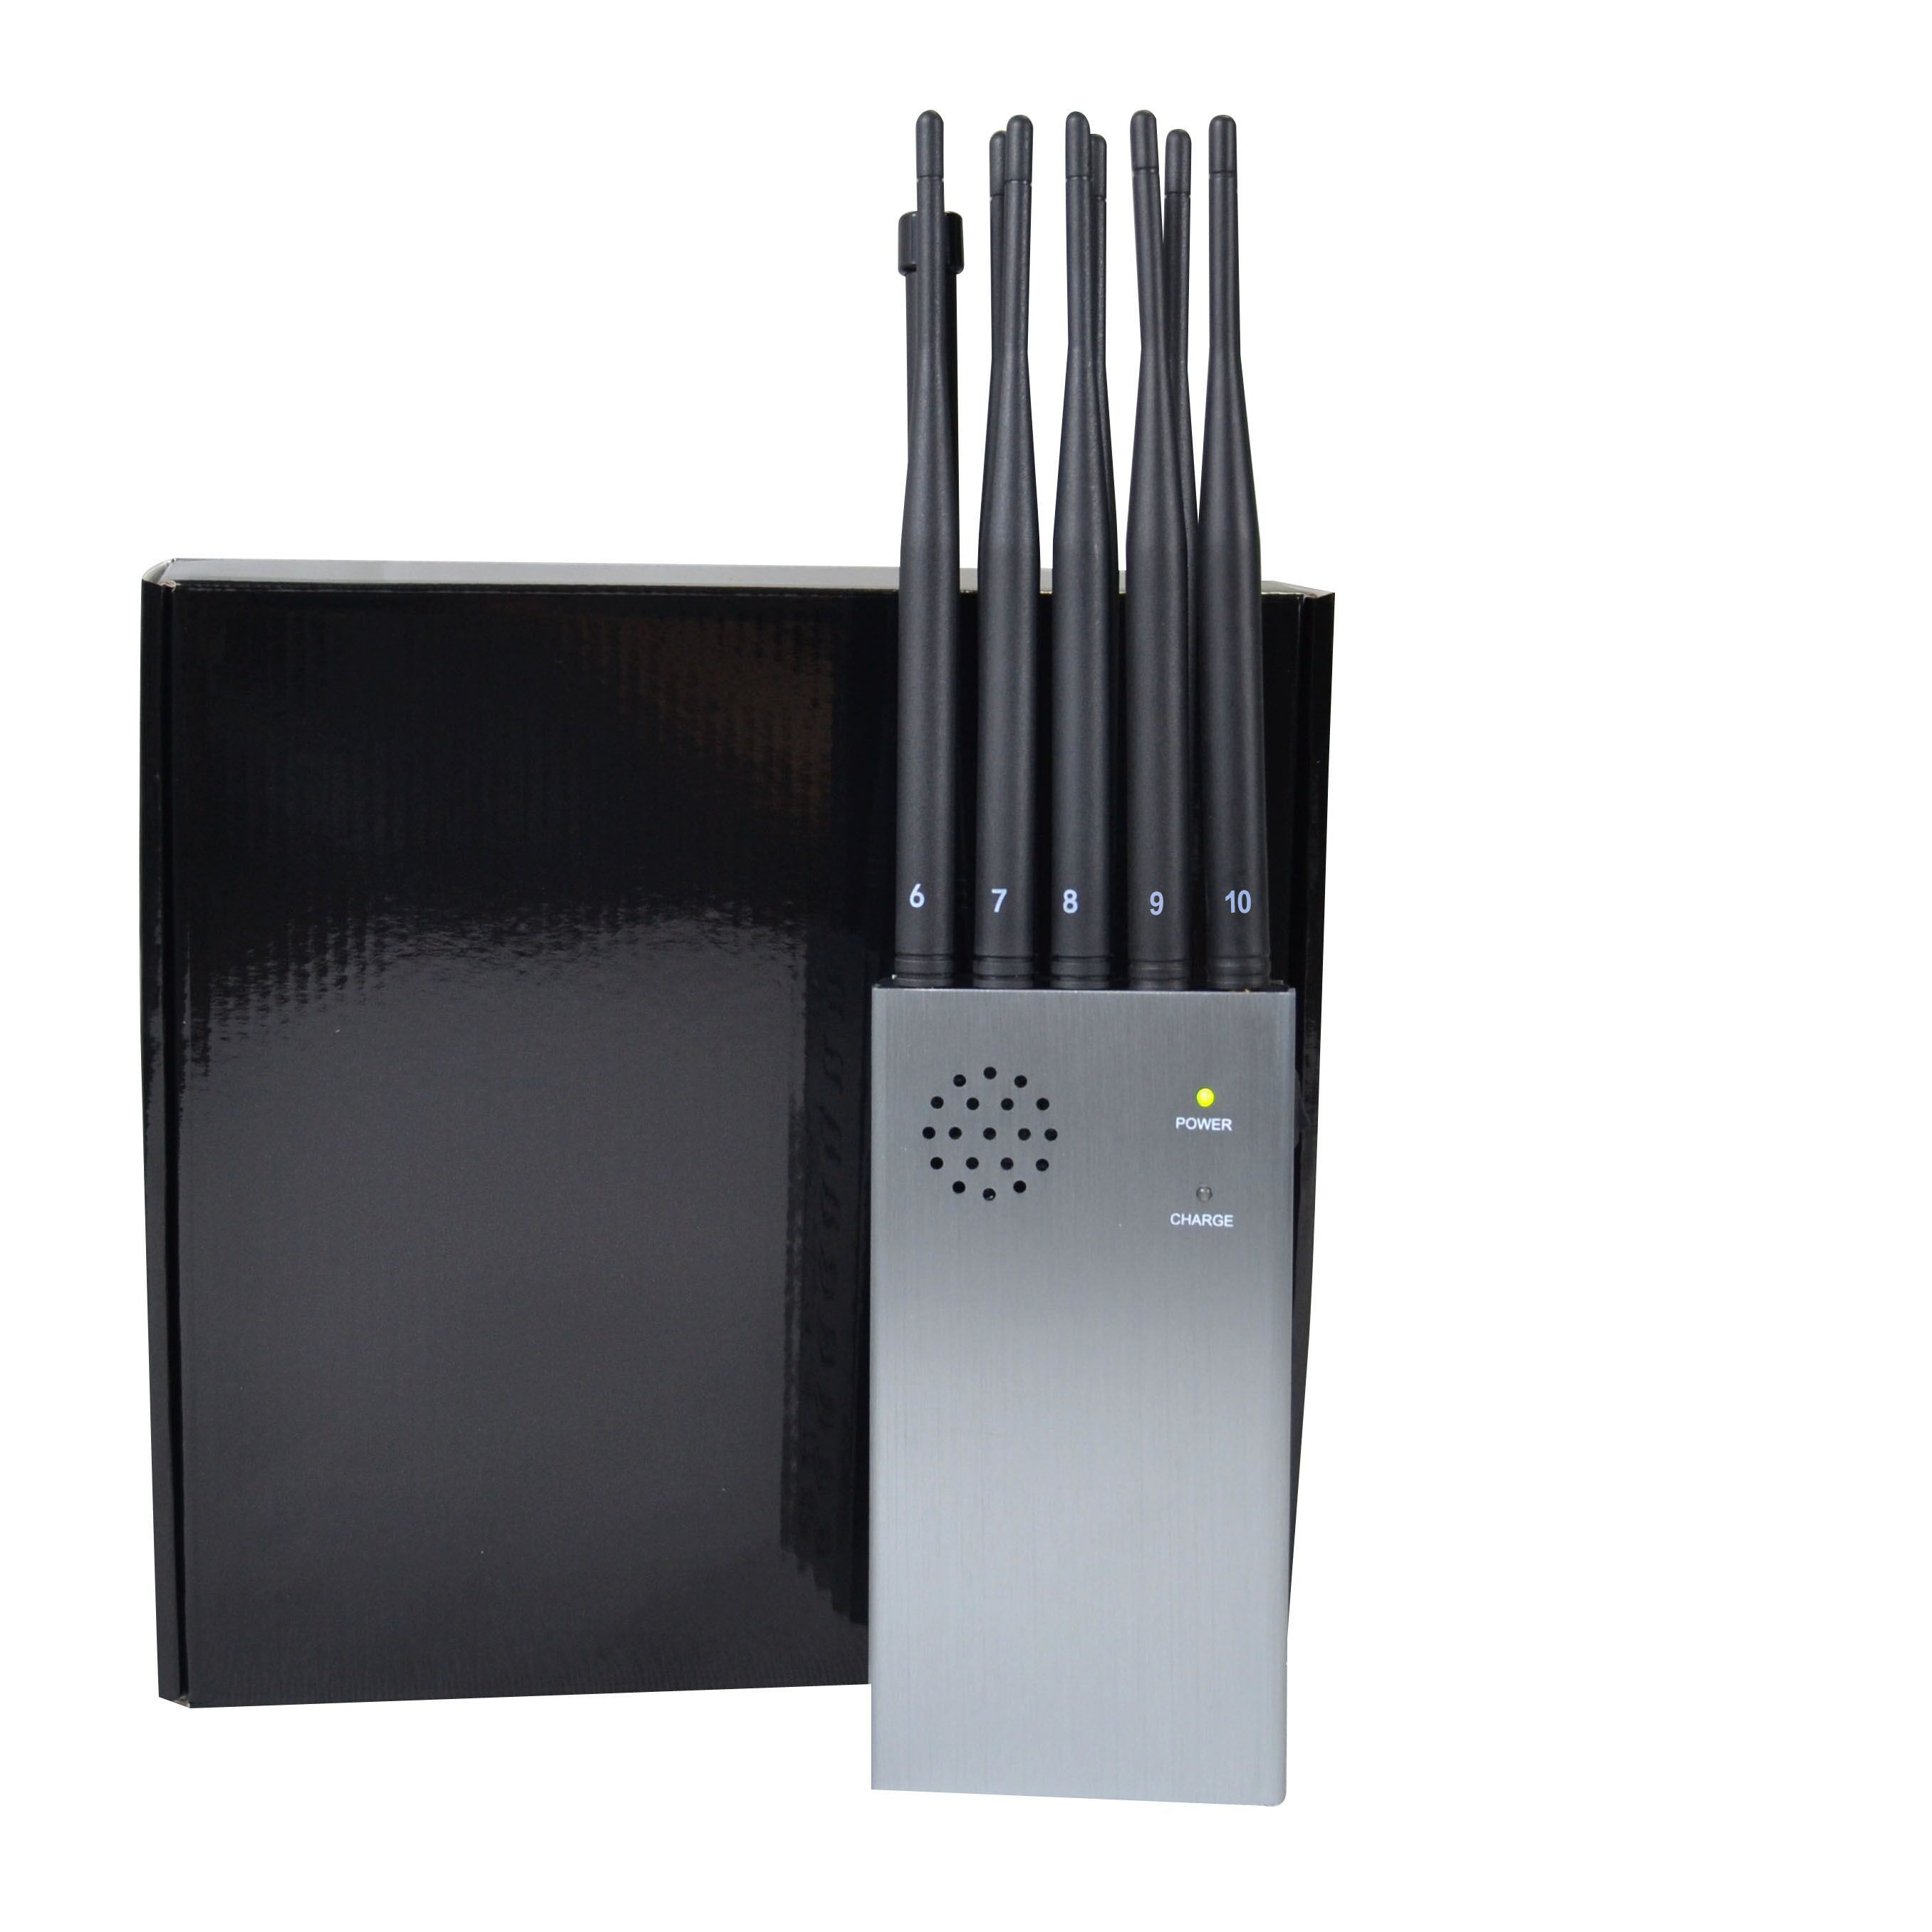 phone jammer london ohio - China Power King Jammers of Cpjp10 with 8000mA 2g 3G 4G 5g Remote Control Jammers for 2g 3G 4G 5g Lojack - China 8000mA Battery Jammer, Large Volume Power Signal Blocker